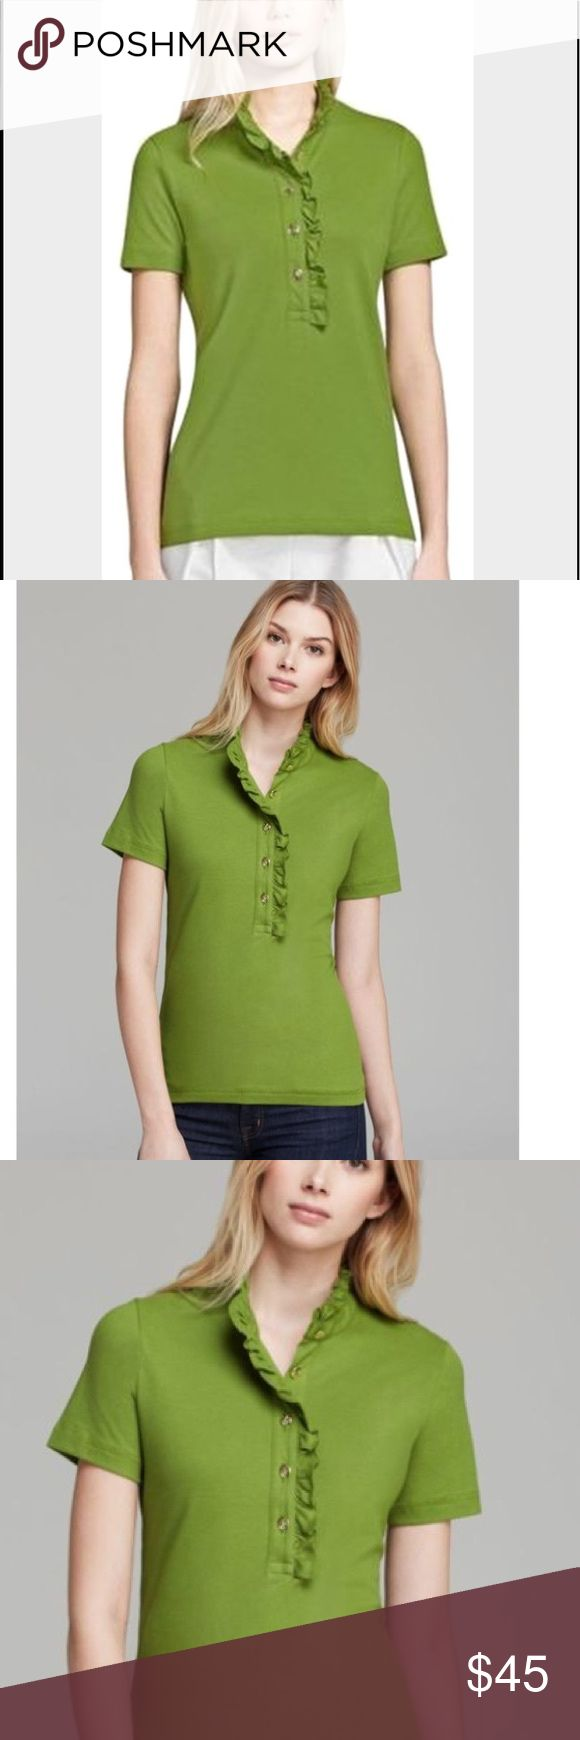 Tory Burch polo shirt Tory Burch green polo shirt . Beautiful popping green color ! Absolutely love this shirt hate to let it go but it's a bit small in me now. But it went with so many outfits and could be dressed down or up. It will be one of your absolute favorite shirts! It's in excellent condition!!! Last two pictures are same shirt and buttons just different color:) Tory Burch Tops Blouses